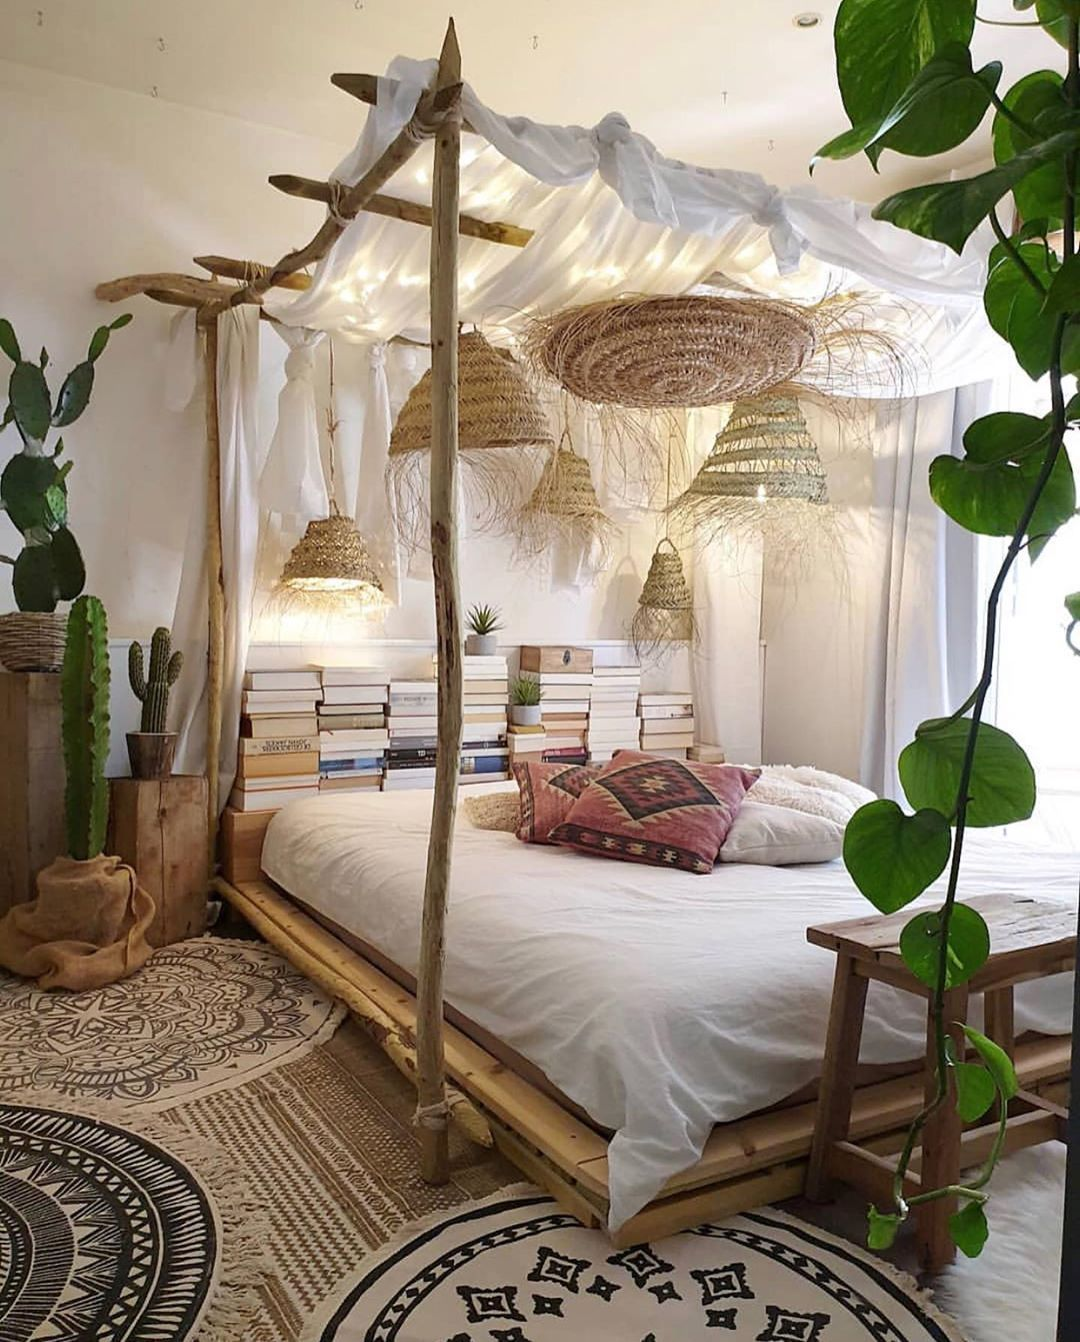 10 Charming And Rustic Beautiful Bedrooms Idea Of Decoration In 2020 Bohemian Bedroom Design Nature Inspired Bedroom Bedroom Inspirations